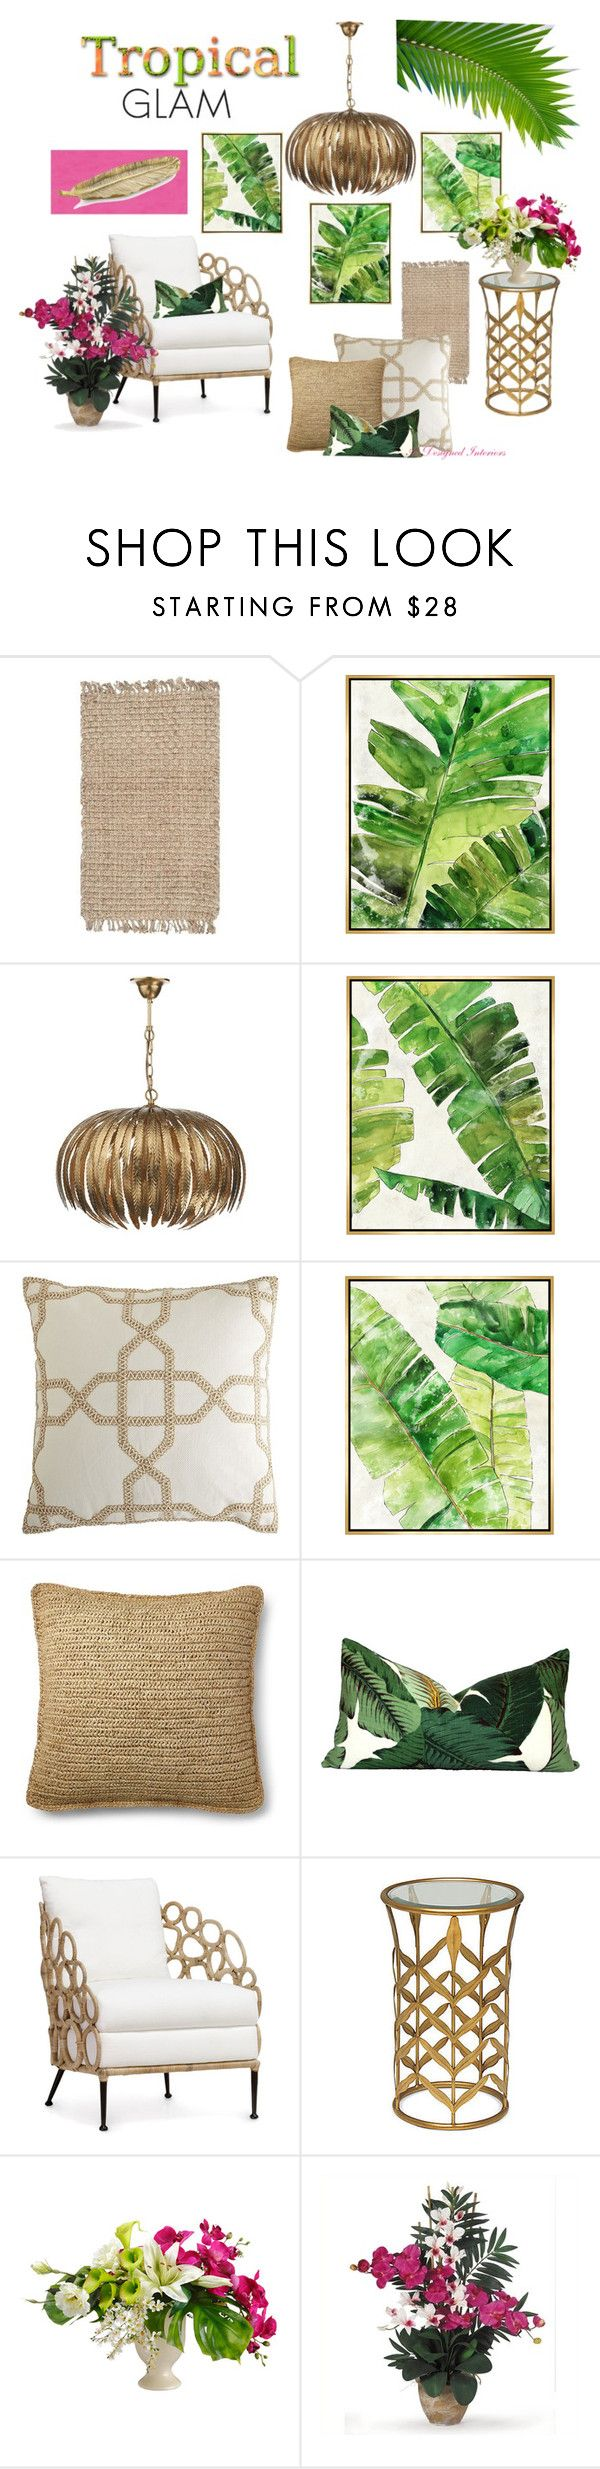 """""""Tropical Glam"""" by angela-l-s ❤ liked on Polyvore featuring interior, interiors, interior design, home, home decor, interior decorating, Safavieh, Barclay Butera, Pier 1 Imports and Ralph Lauren"""